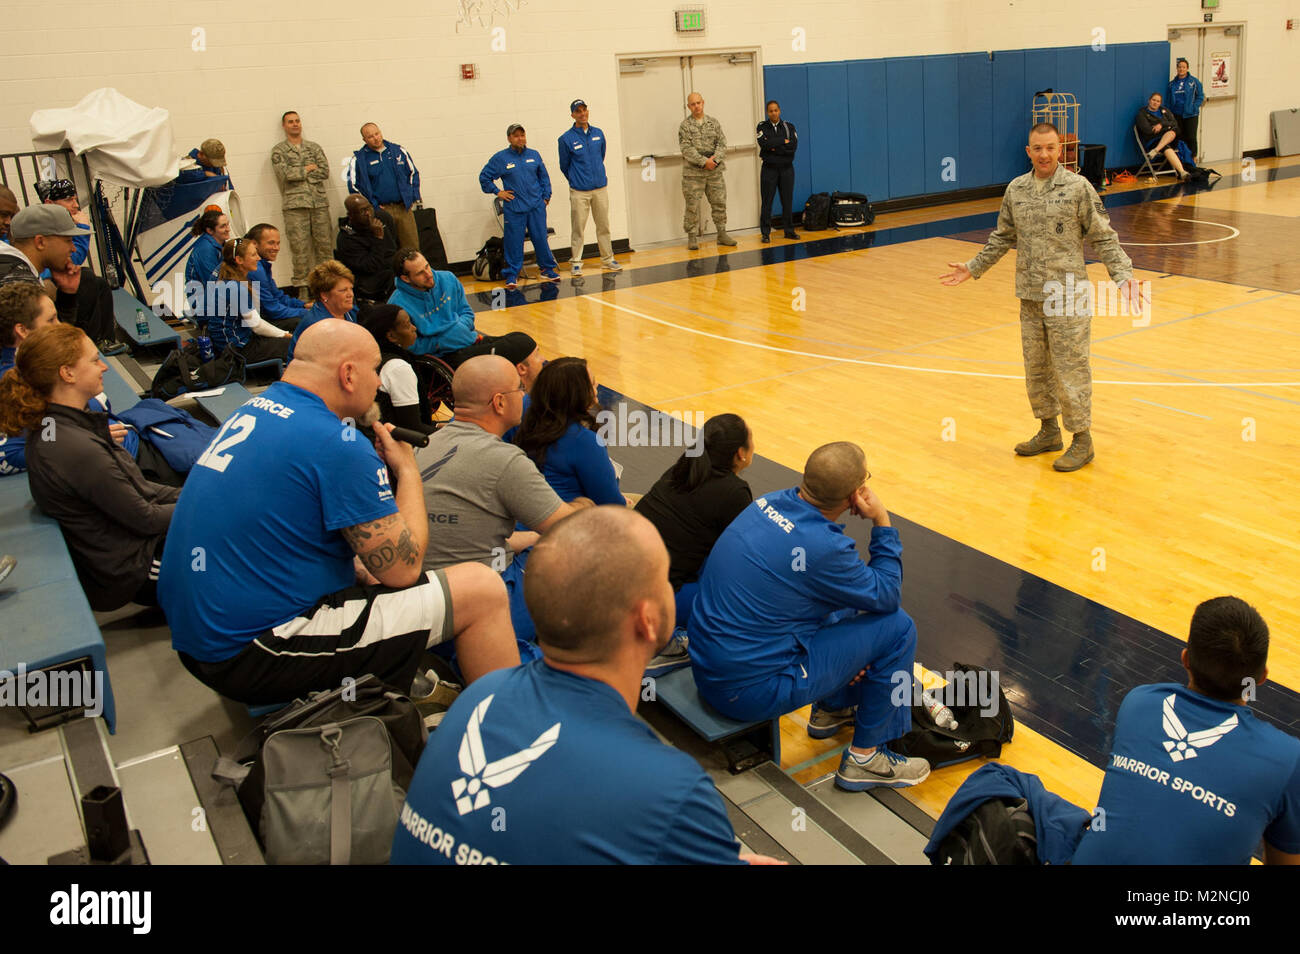 SJO-183 by Air Force Wounded Warrior - Stock Image